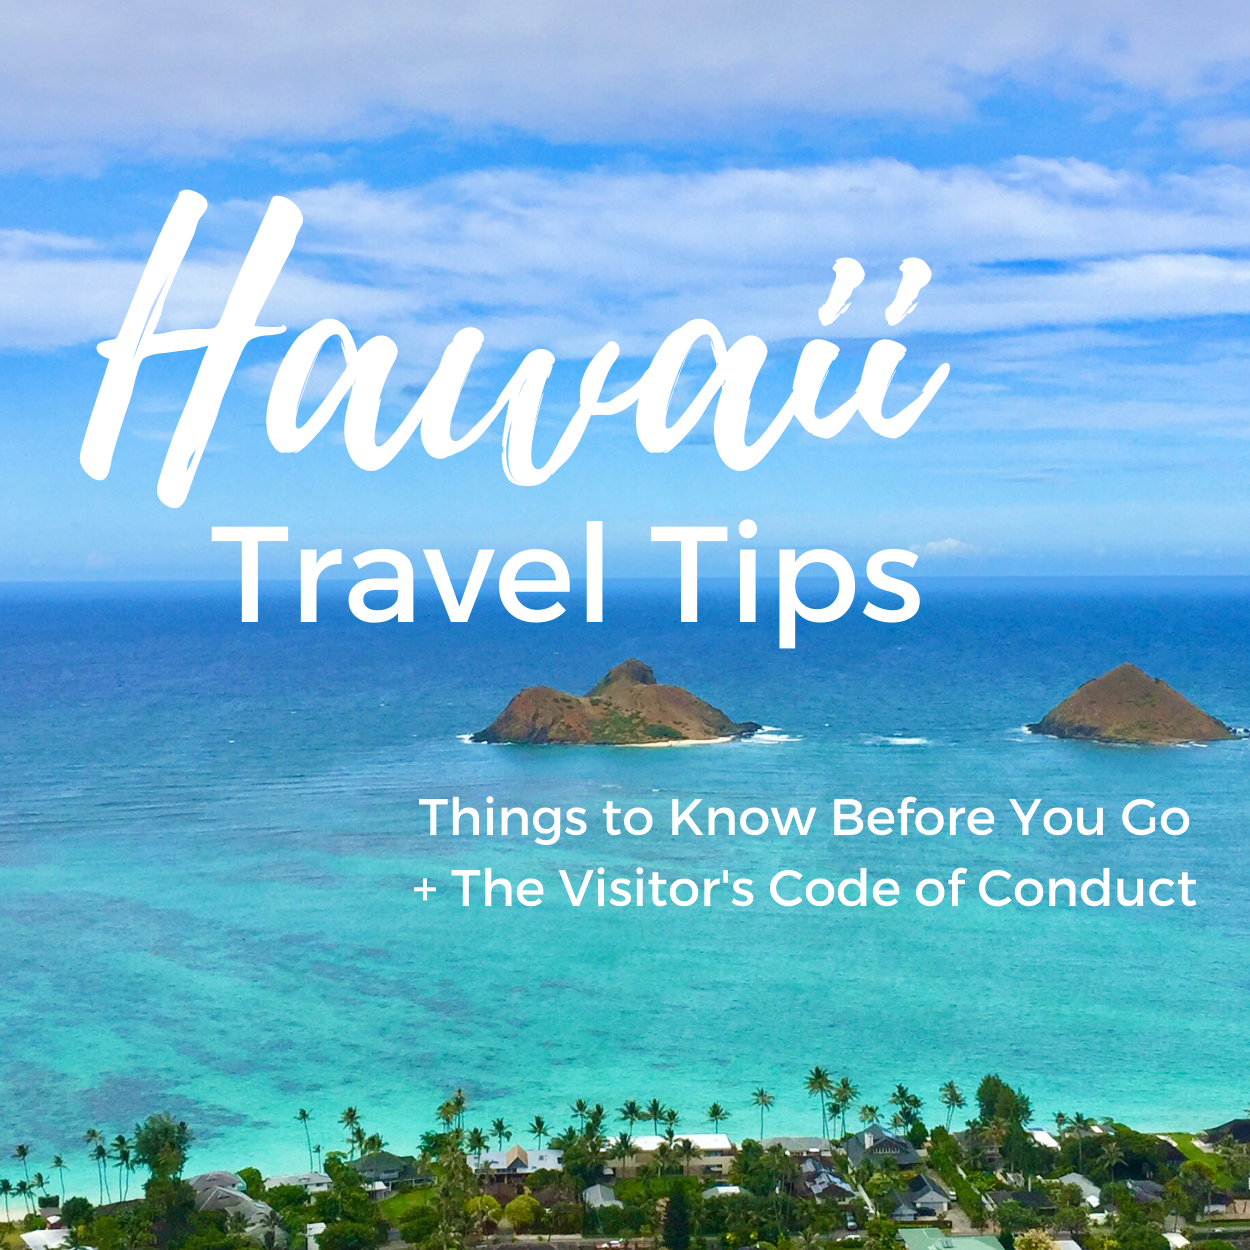 Hawaii Travel Tips: Things to Know BEFORE You Go